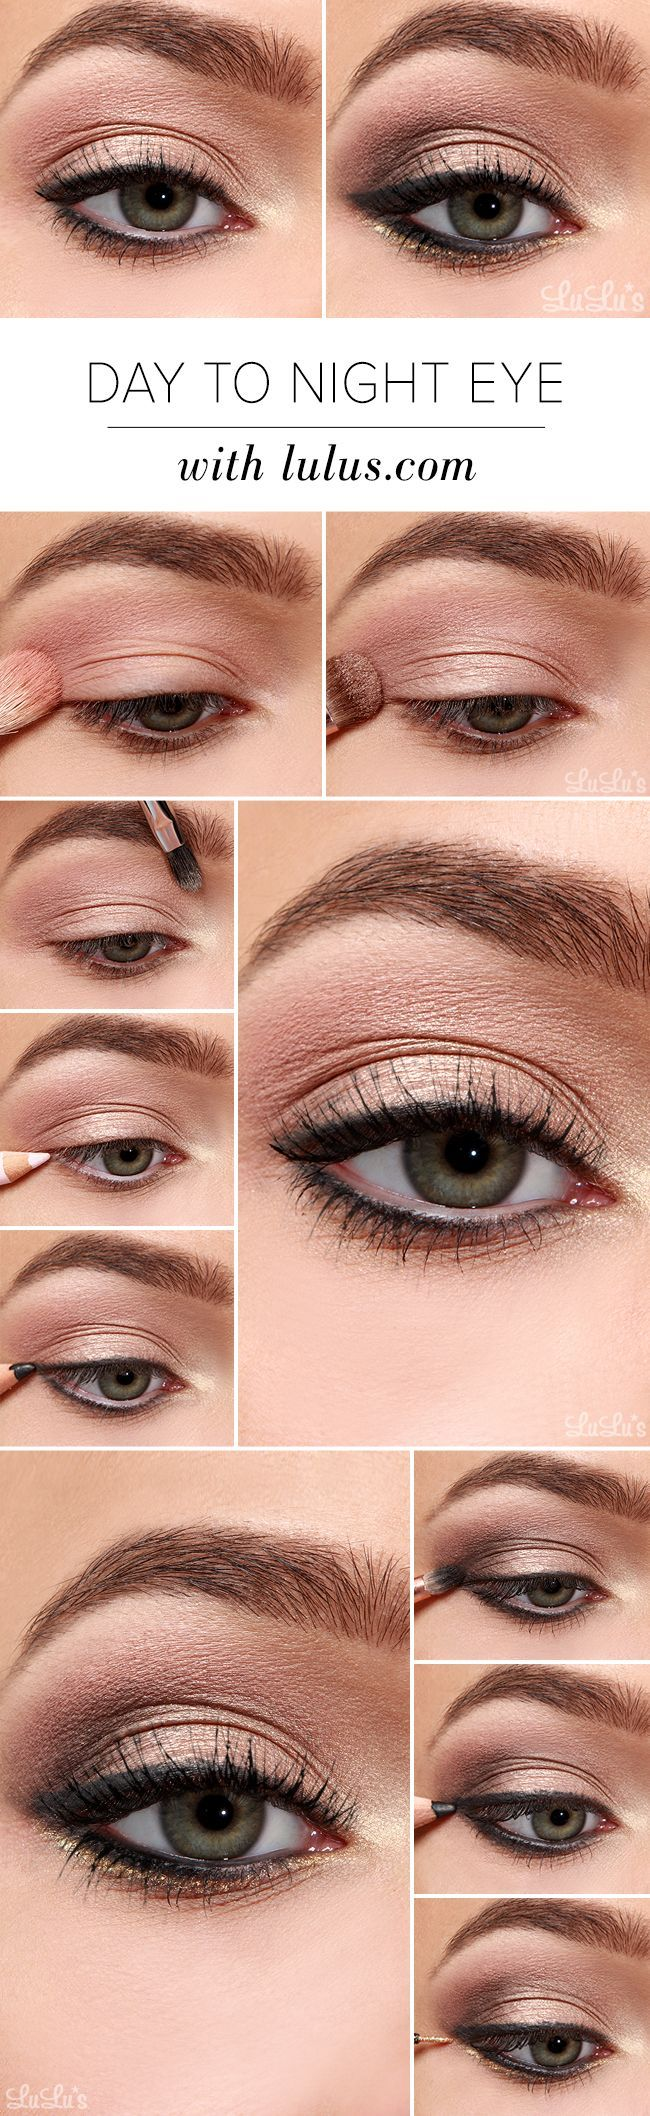 LuLu*s How-To: Day to Night Eye Shadow Tutorial at LuLus.com!